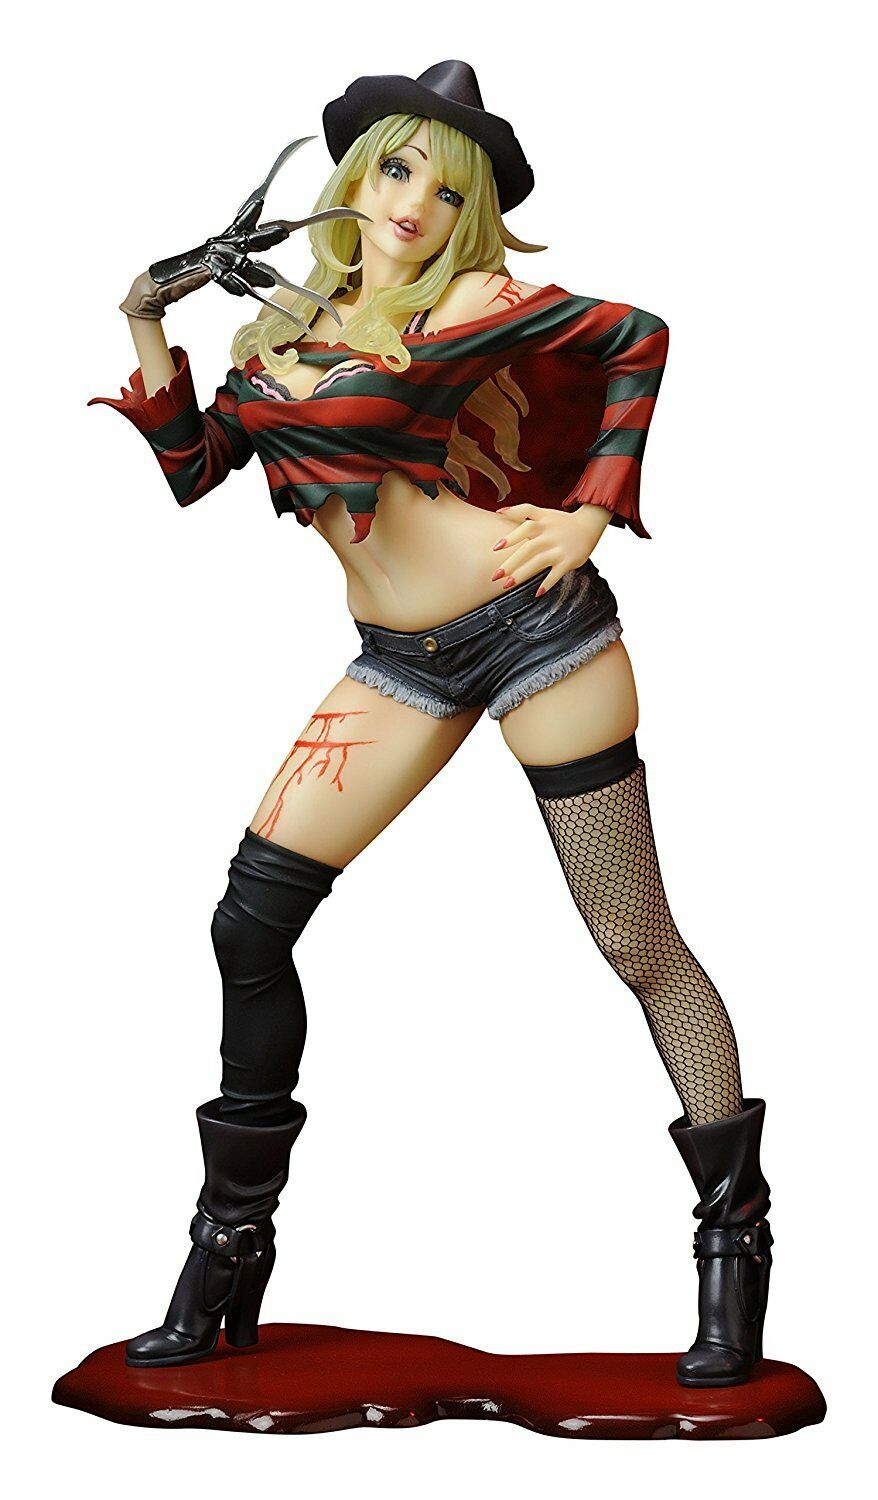 FROTdy Krueger - FROTdy Vs Jason - 1:7th - Bishoujo - 2nd Edition Statue